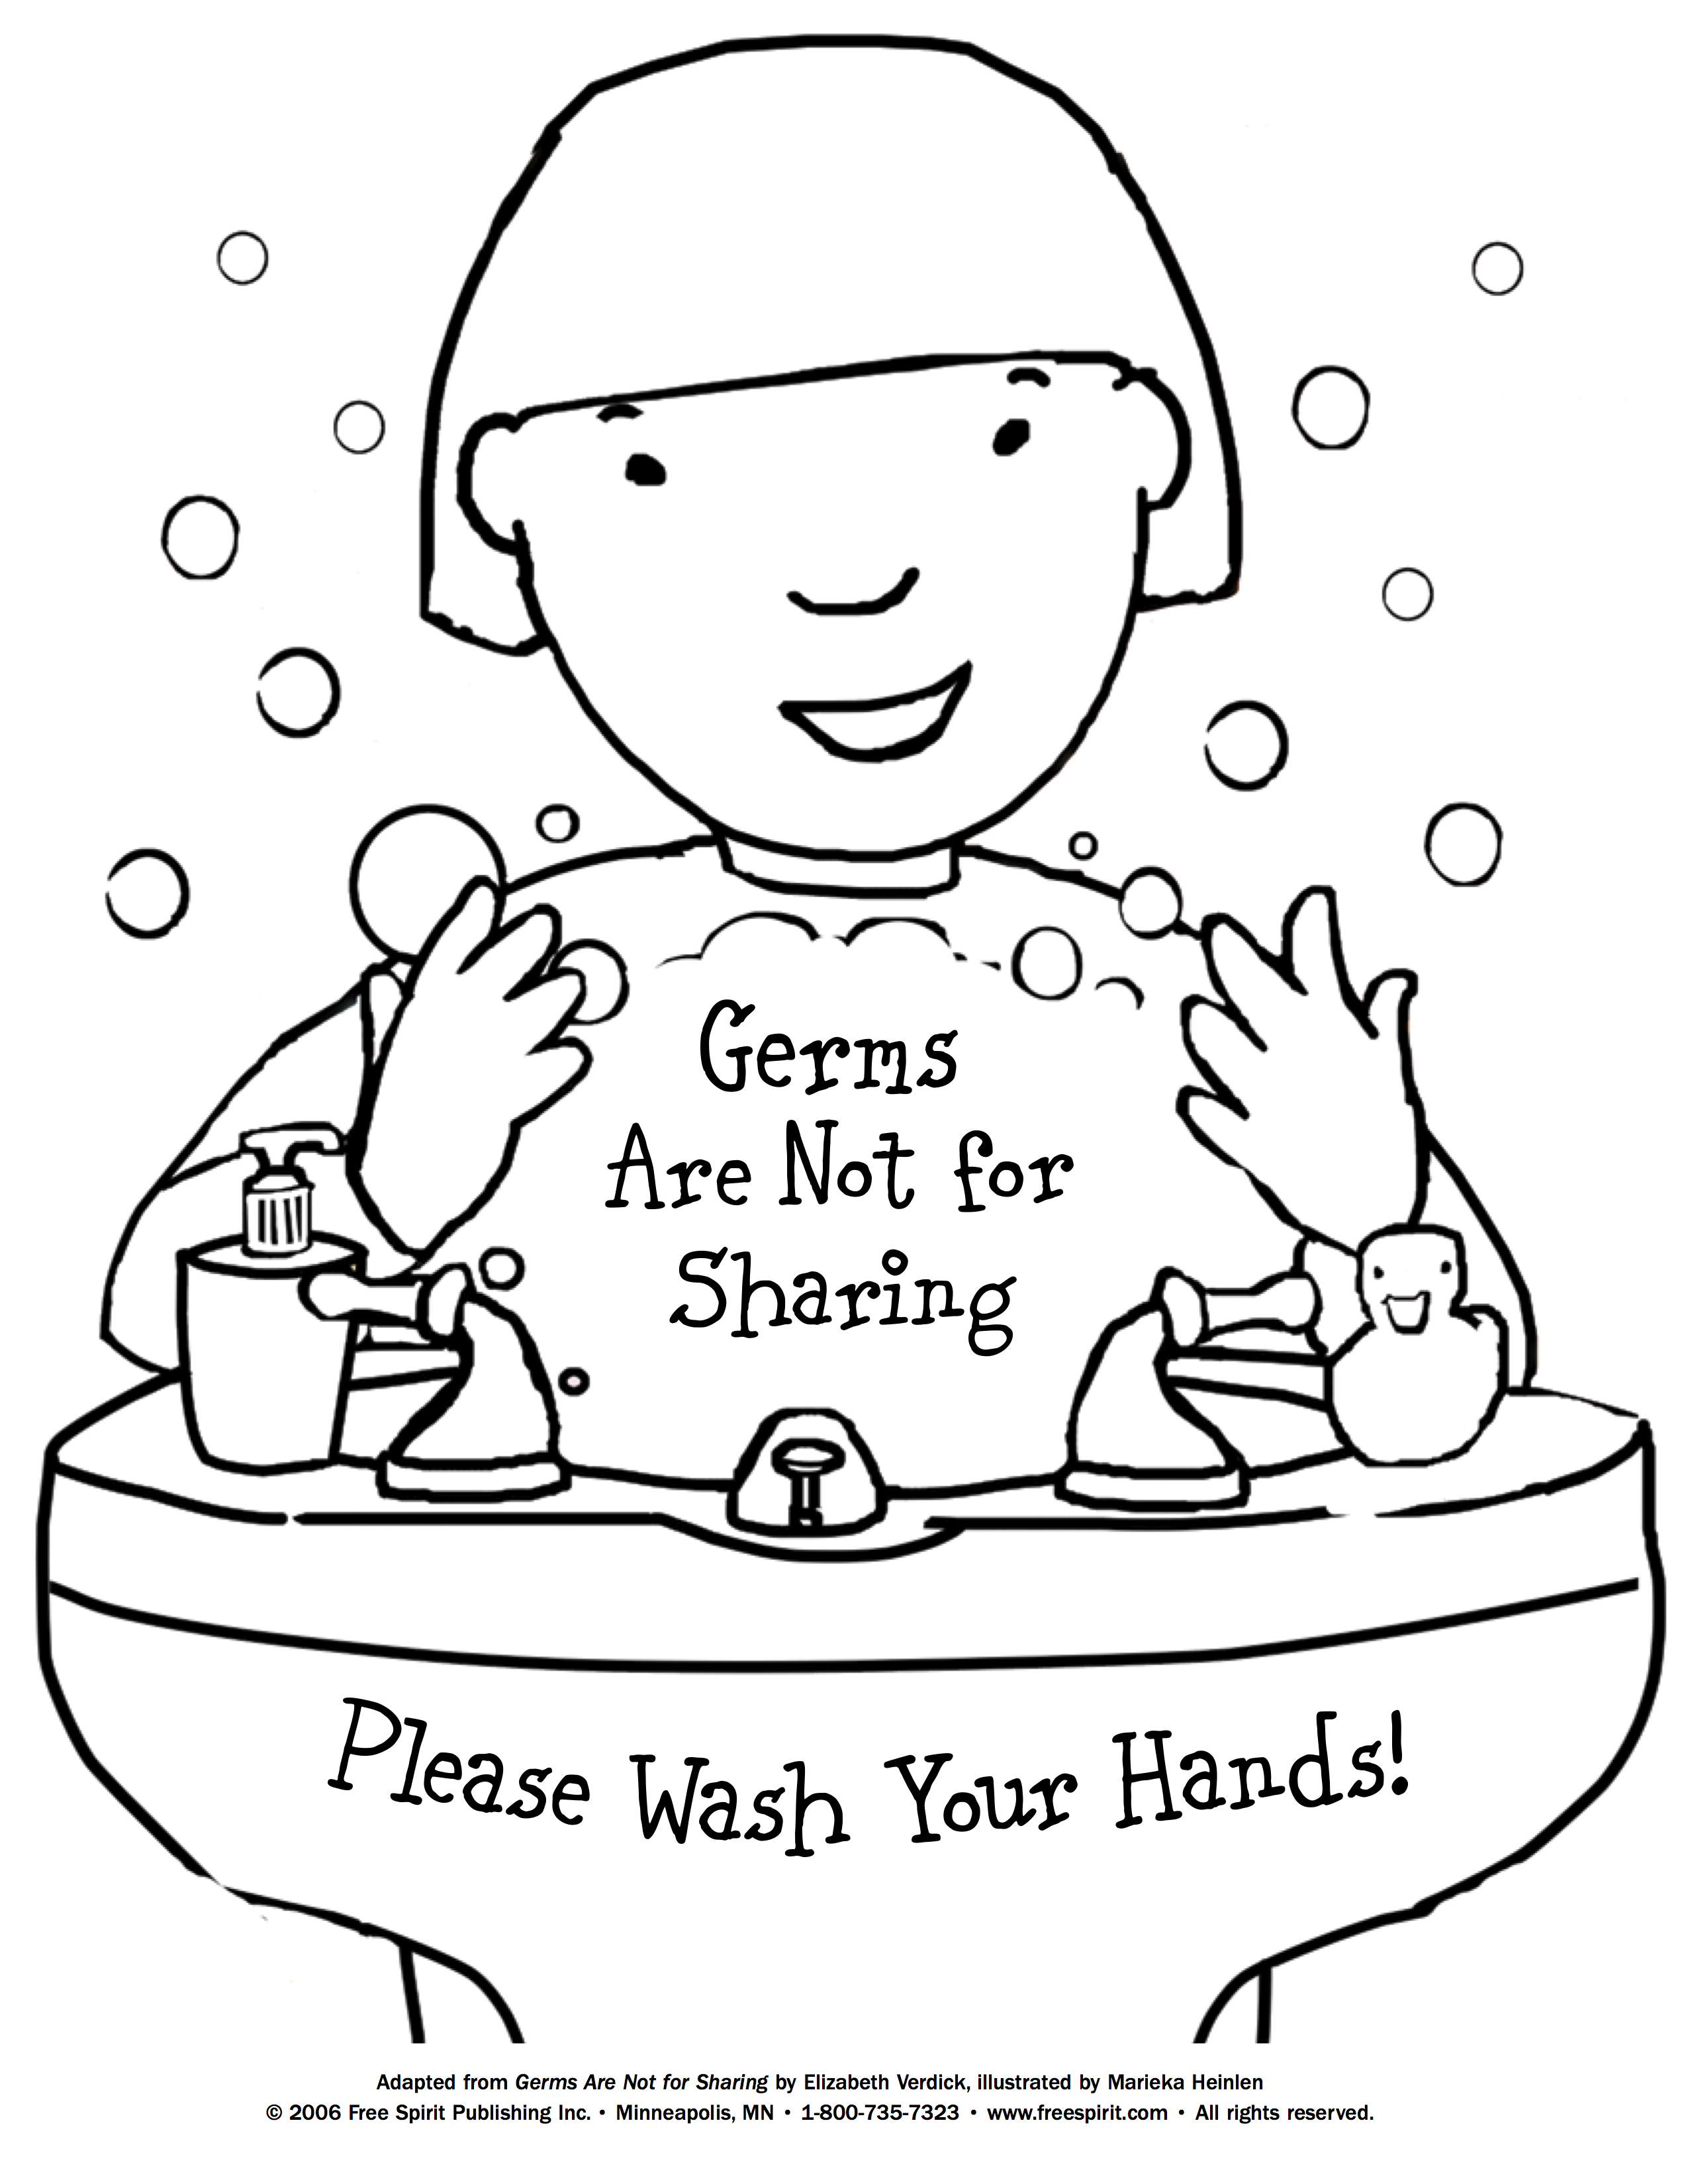 germ coloring sheet coloring pages about germs coloring pages sheet germ coloring